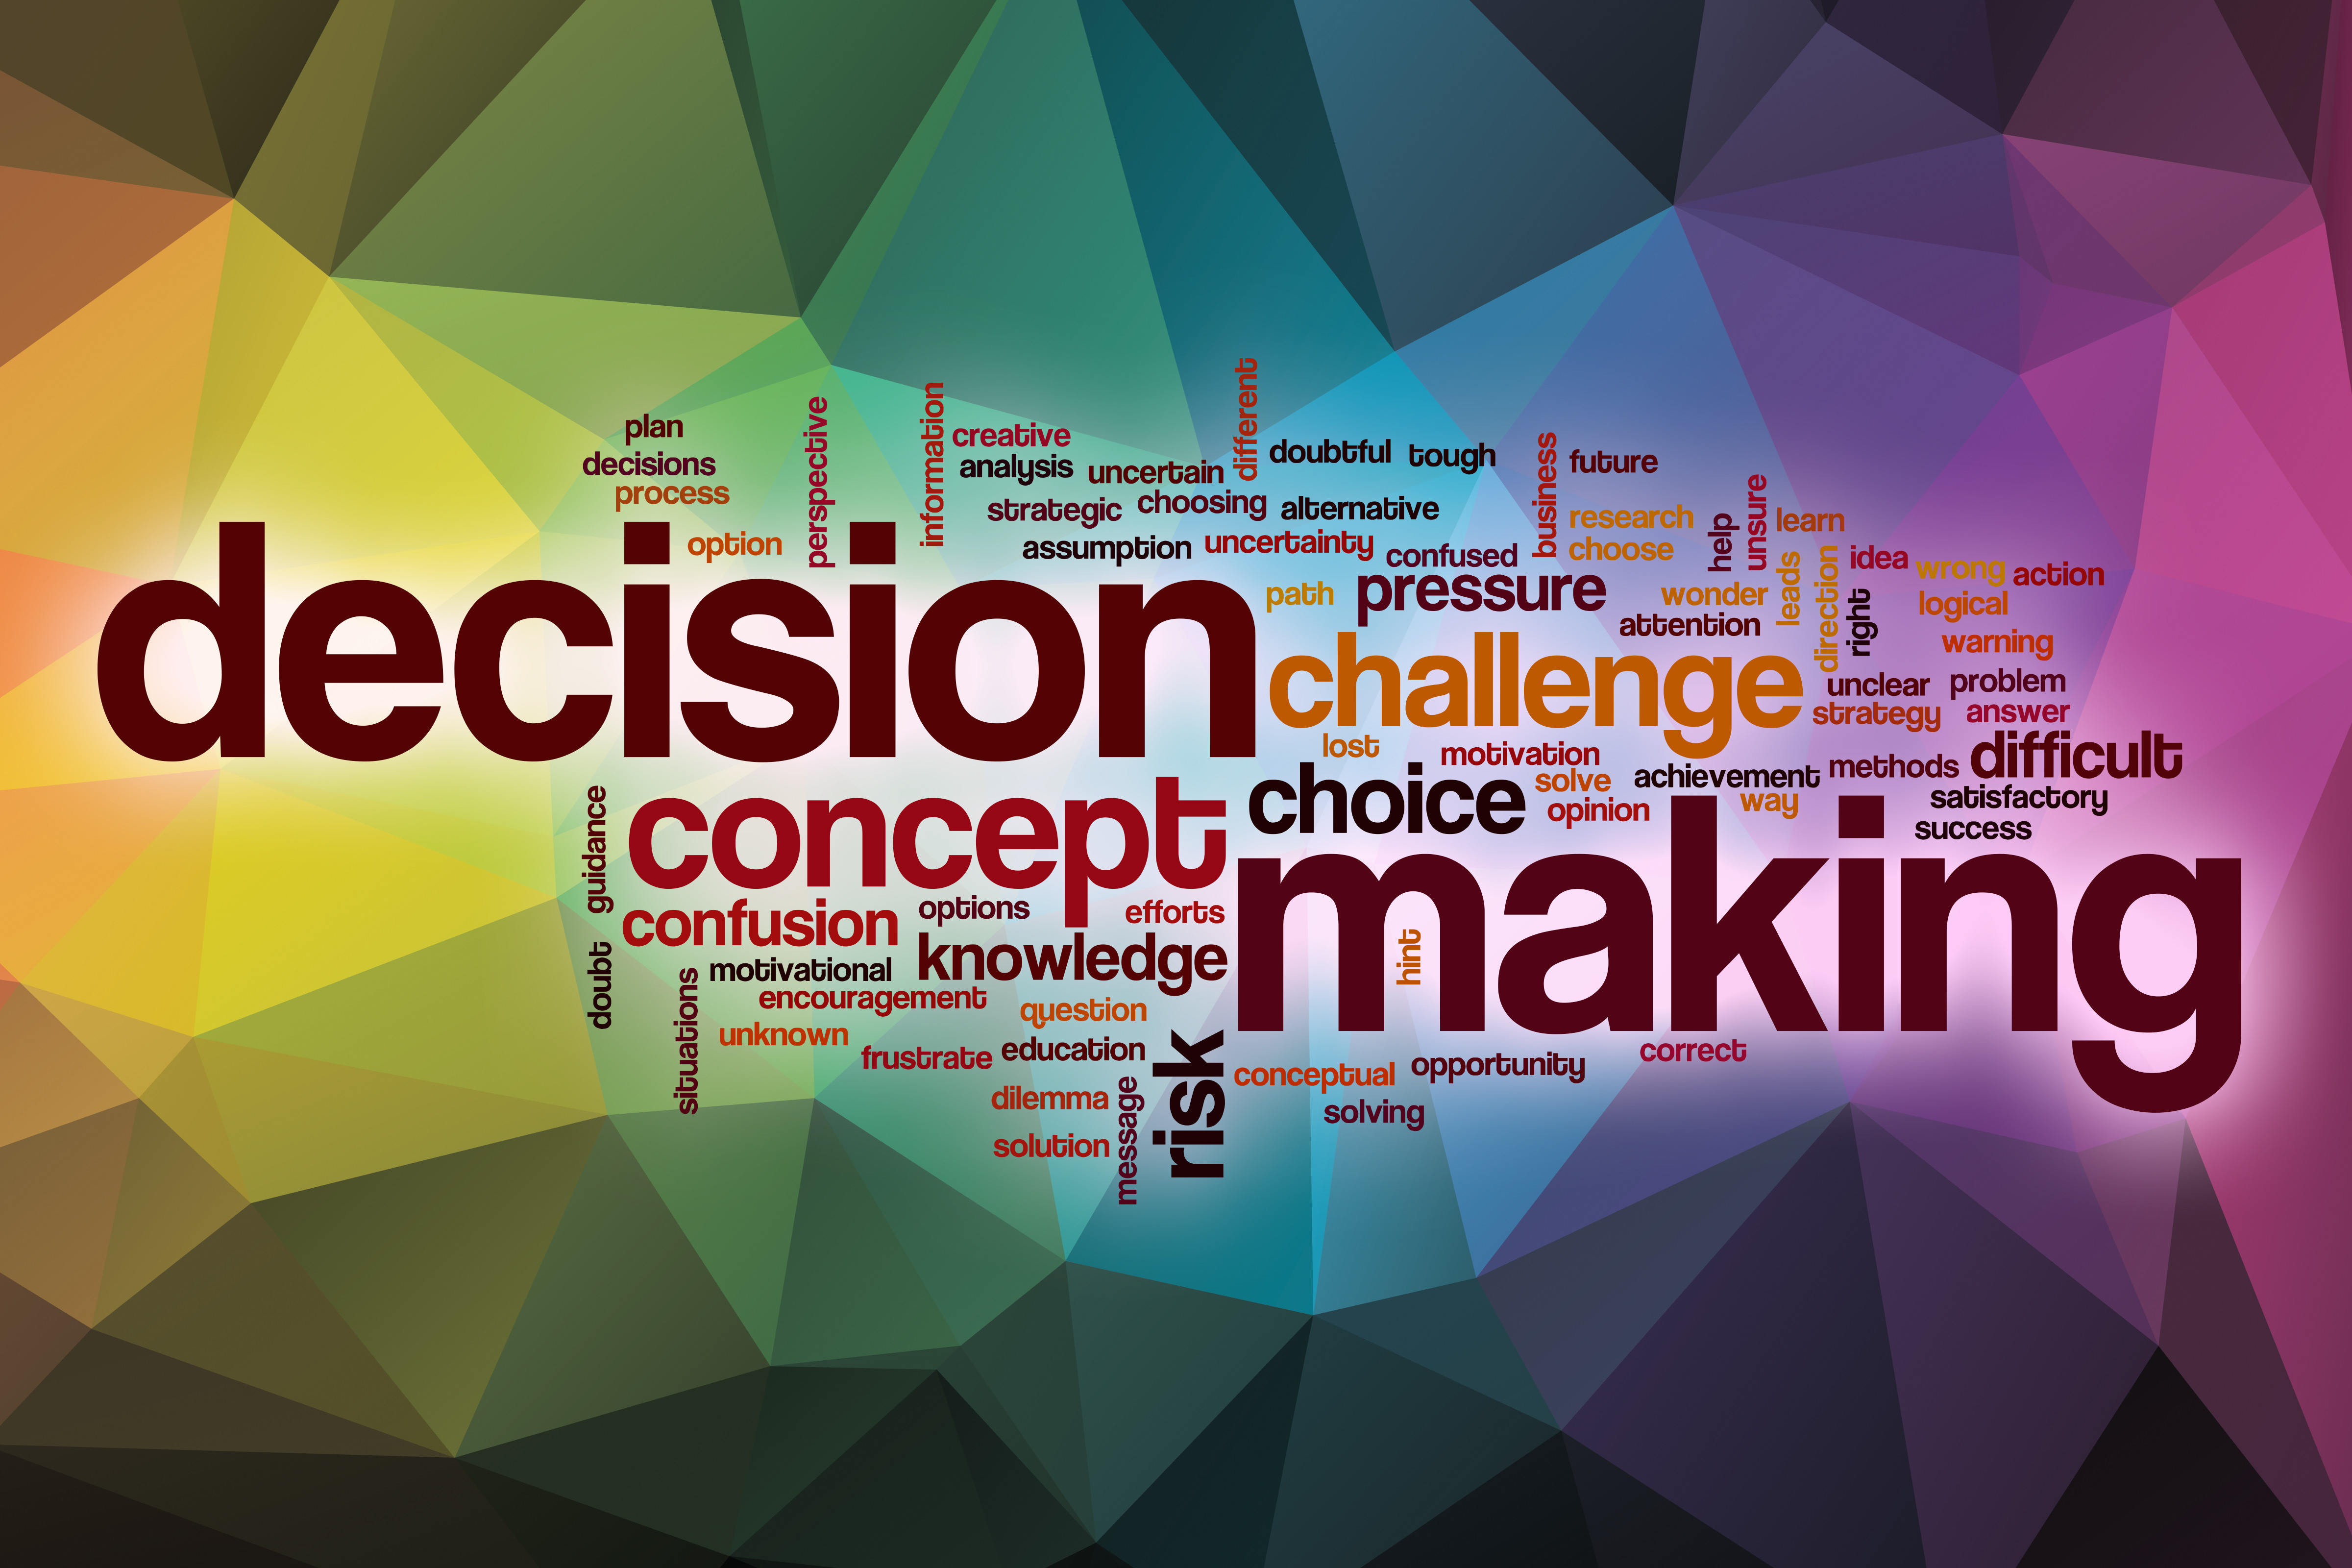 making research decisions and choice of